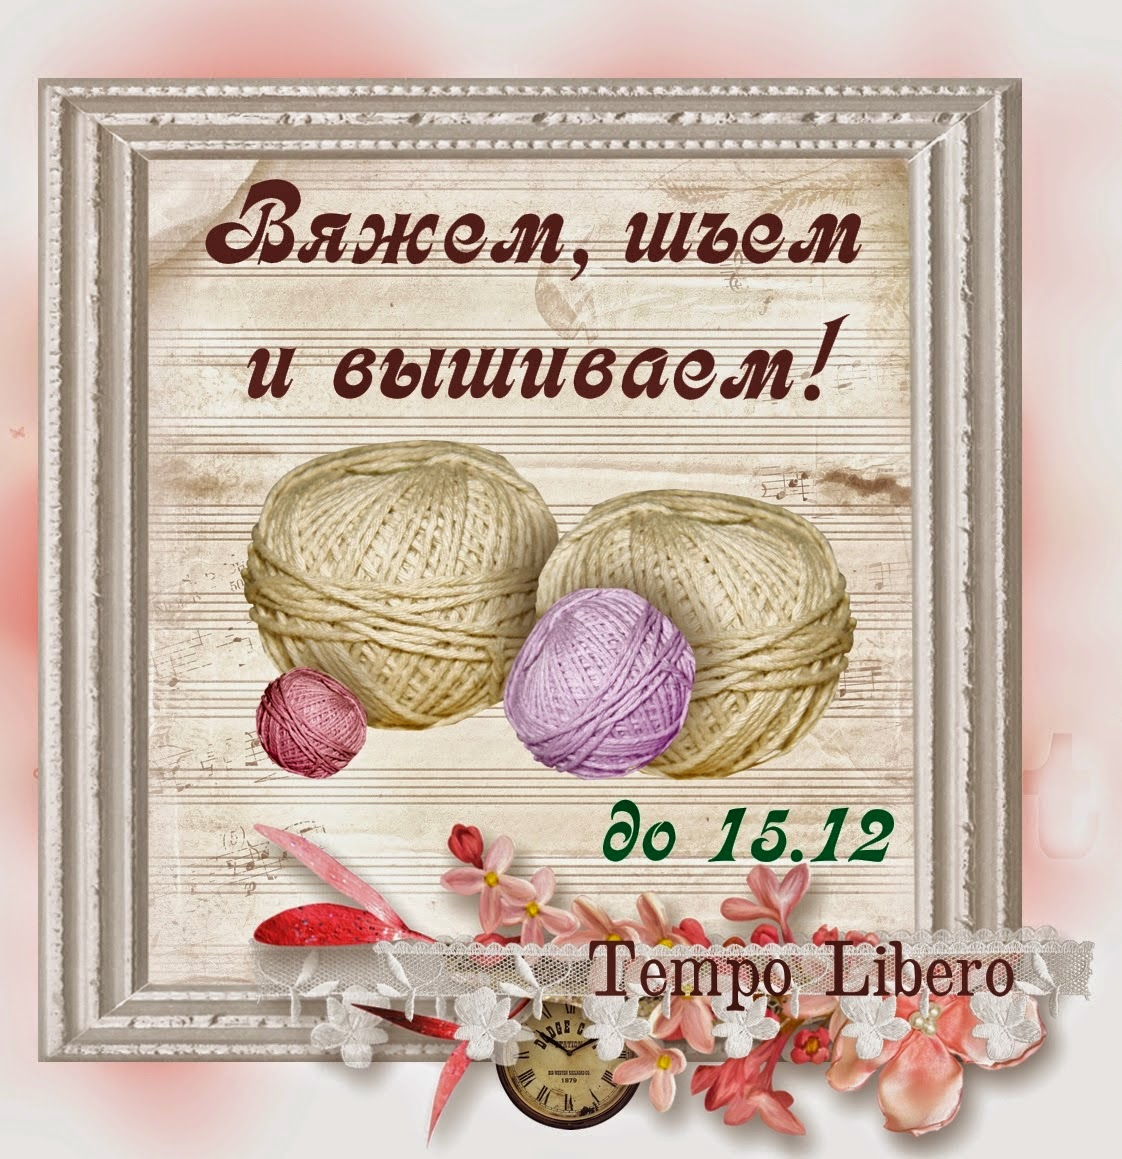 http://timelibero.blogspot.ru/2014/11/blog-post_16.html